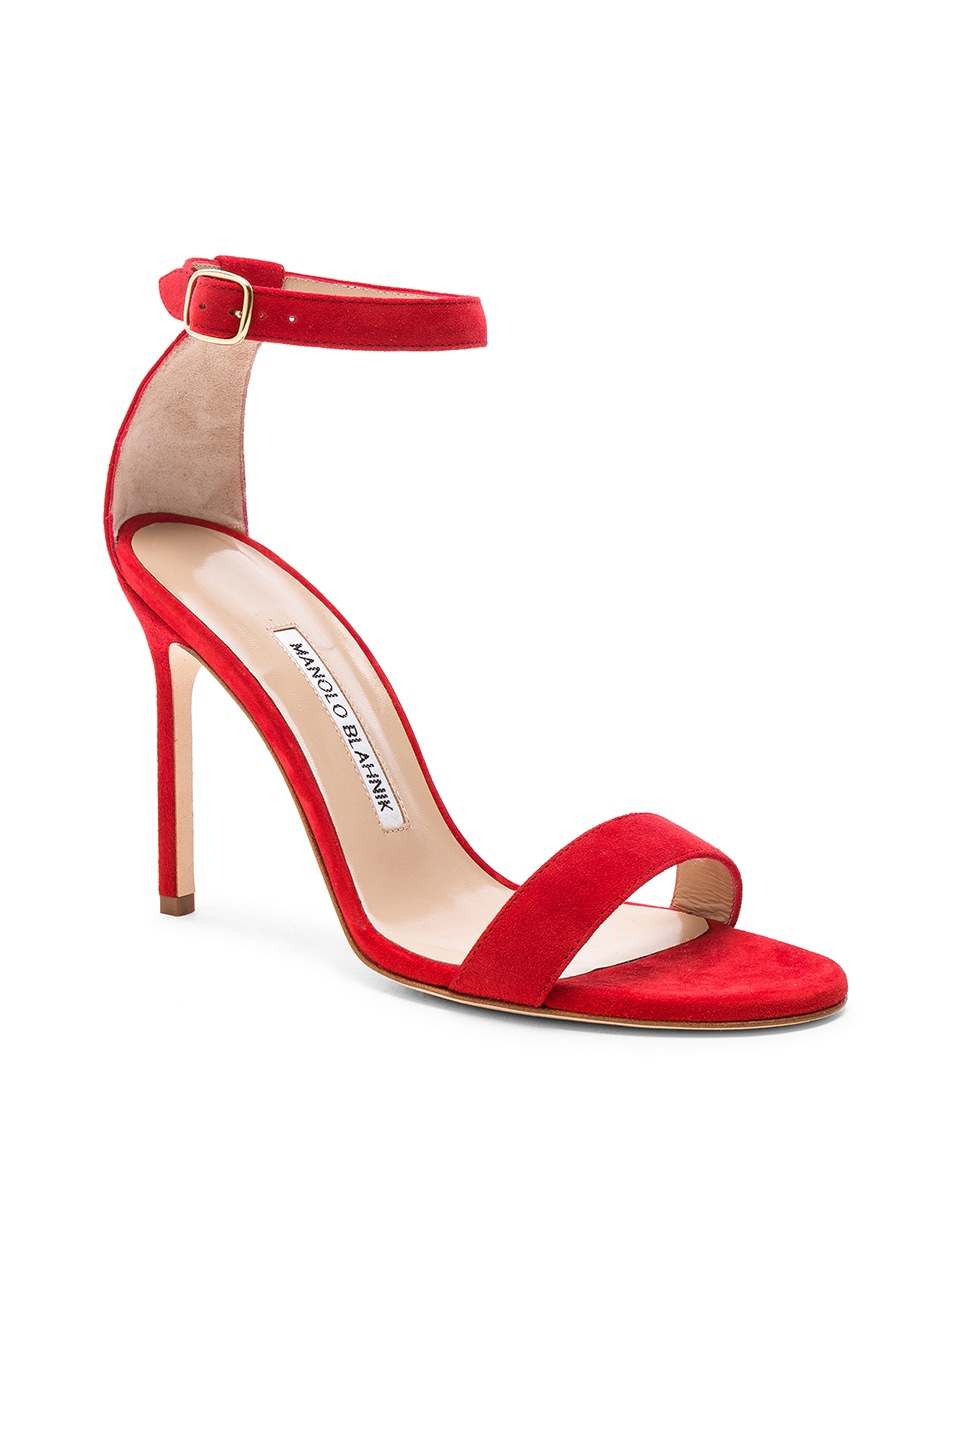 Image 2 of Manolo Blahnik Suede Chaos 105 Sandals in Red Suede